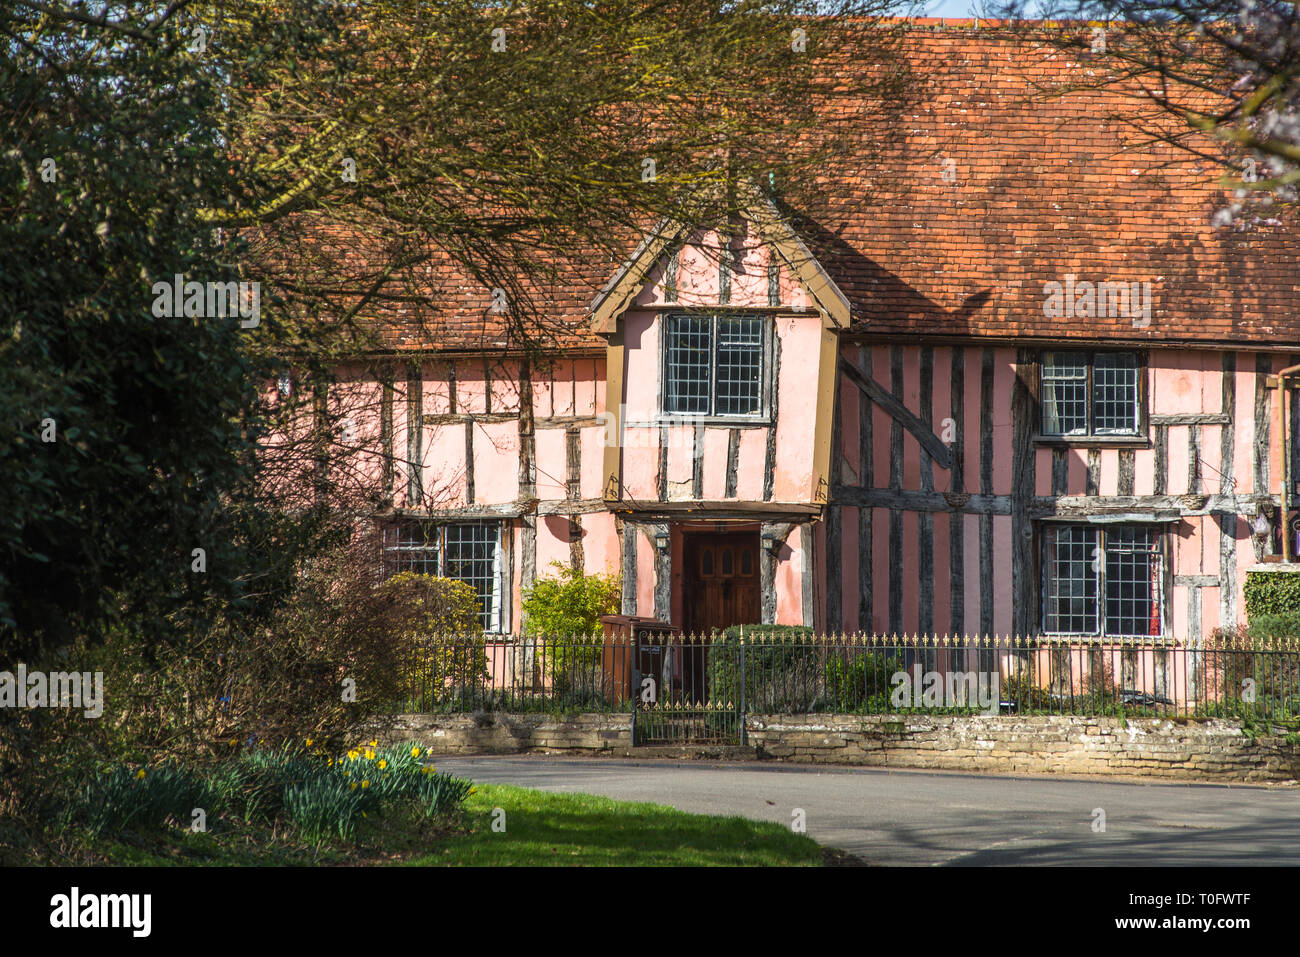 Nether Hall, a half-timbered building in the village of Cavendish, Suffolk, England UK - Stock Image